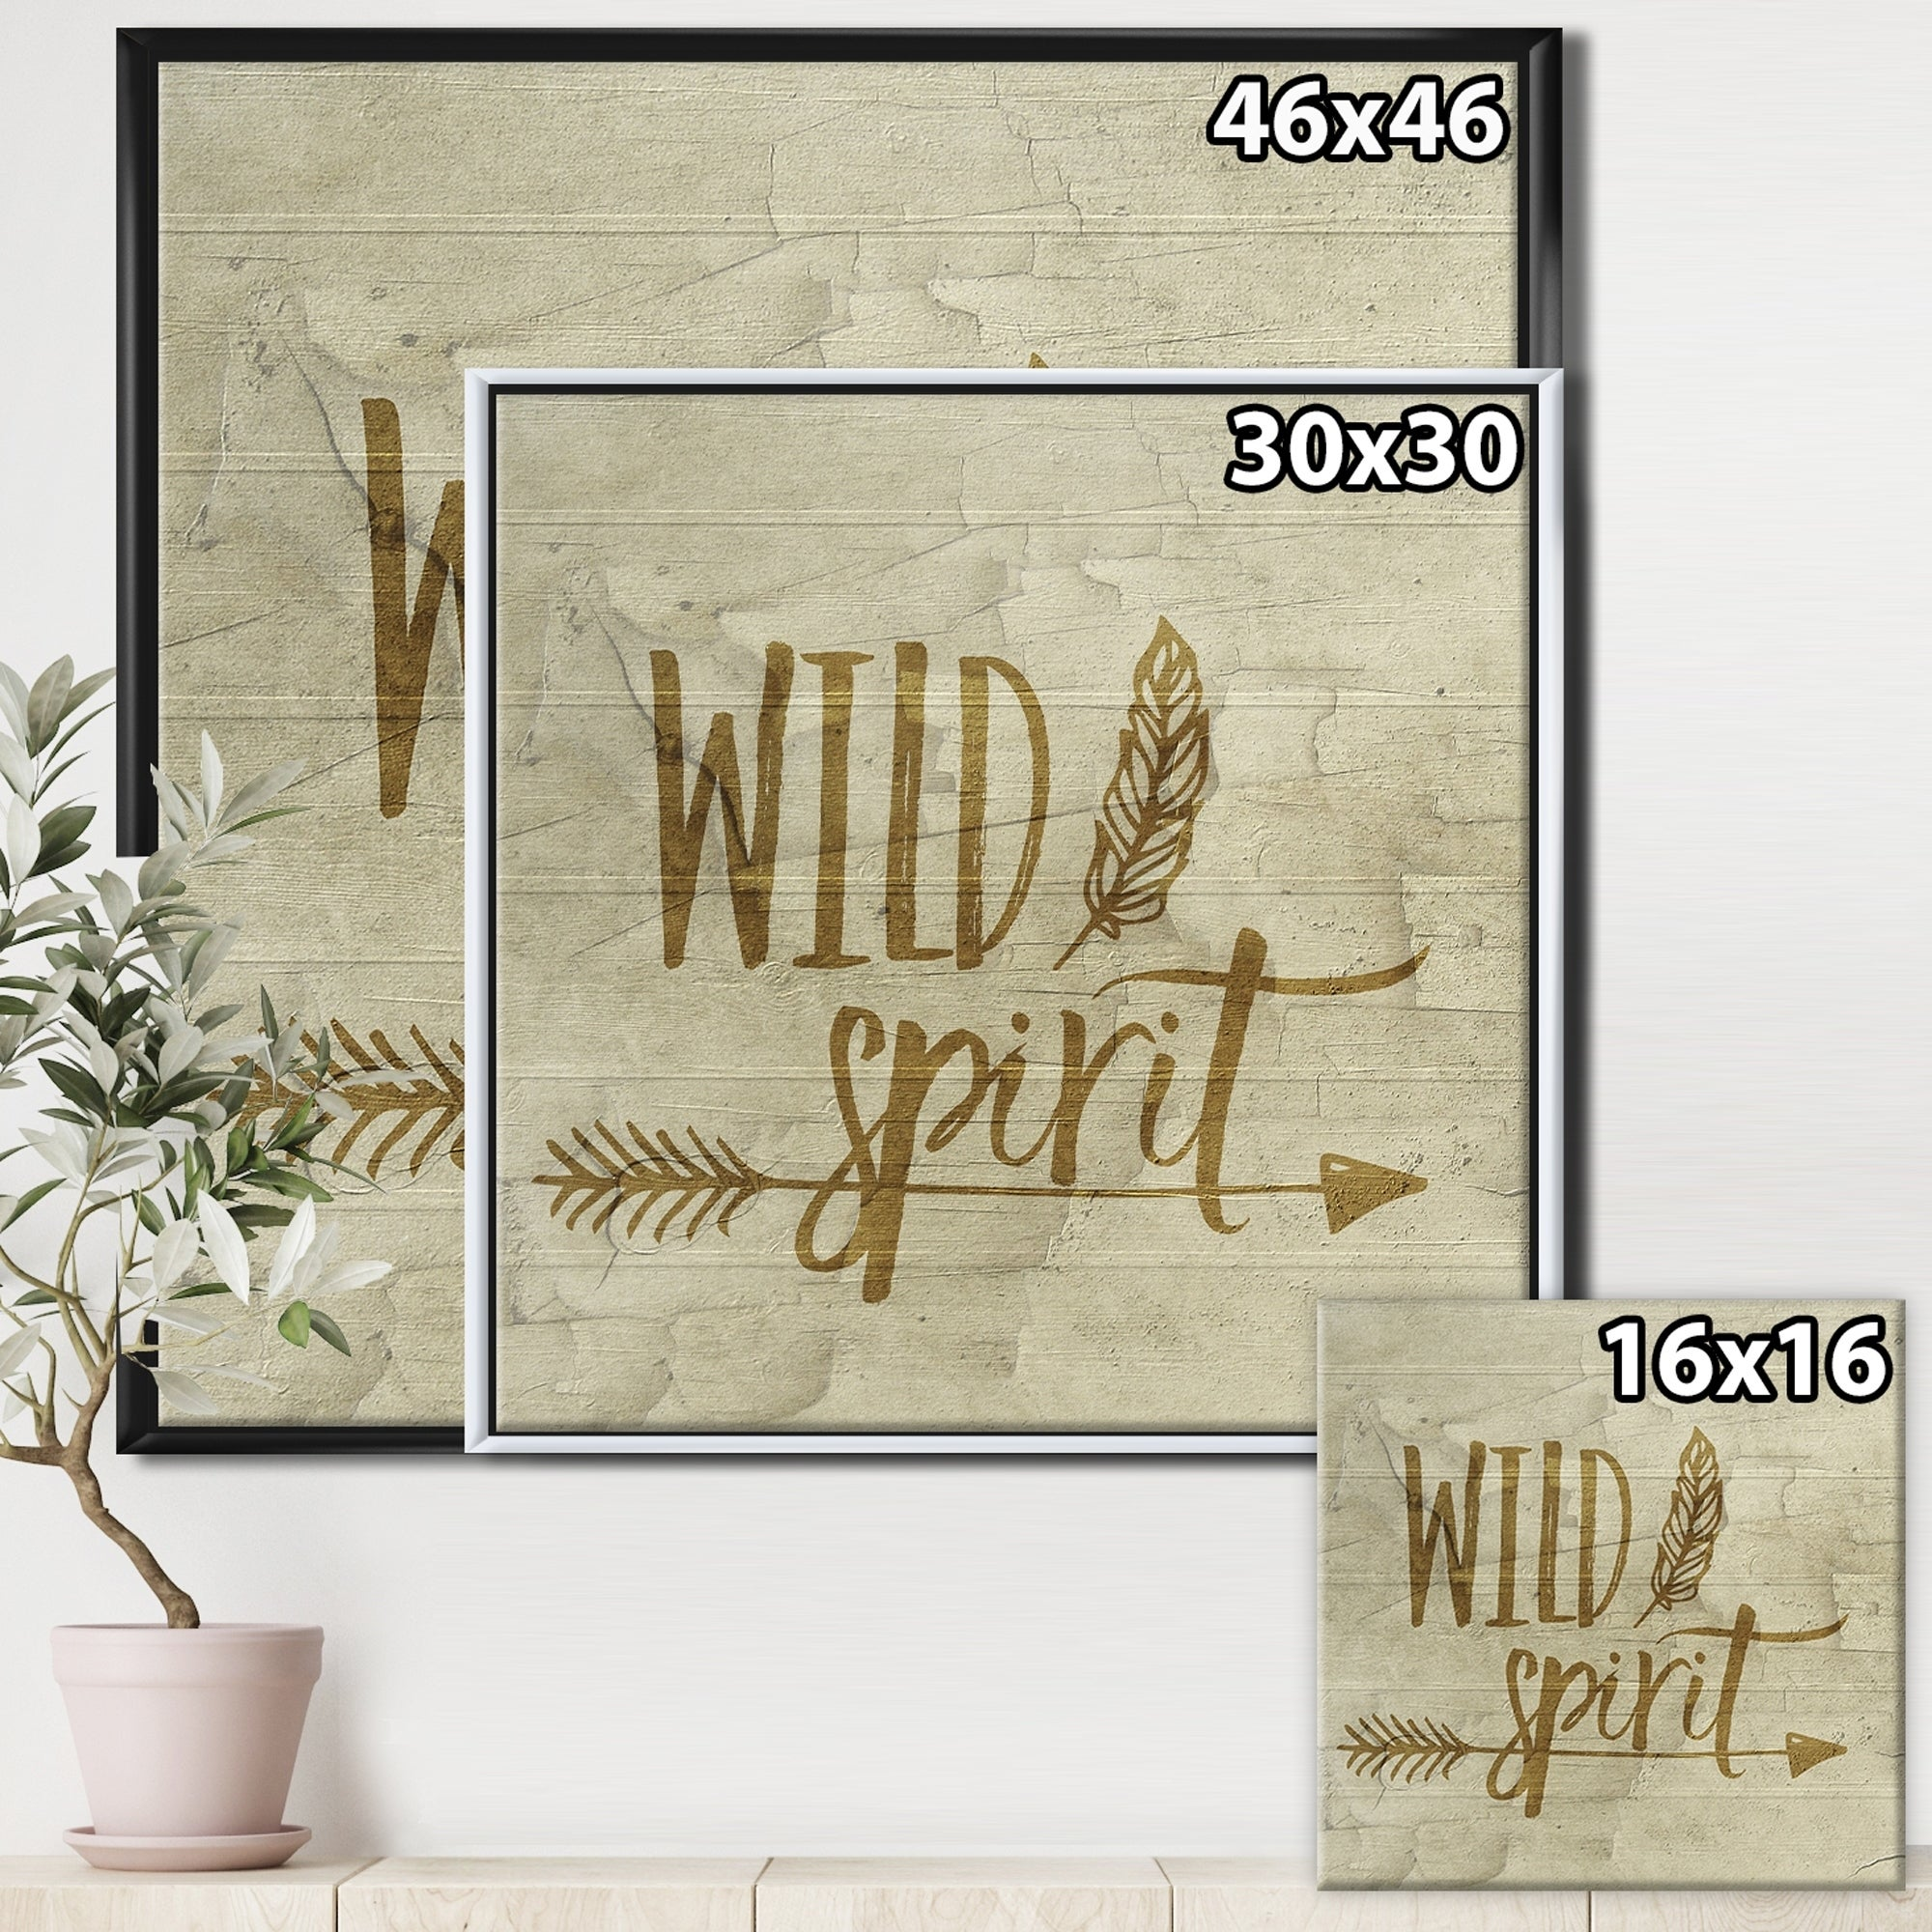 Shop Designart Wild Spirit Cottage Premium Framed Canvas Wall Art On Sale Overstock 28805708